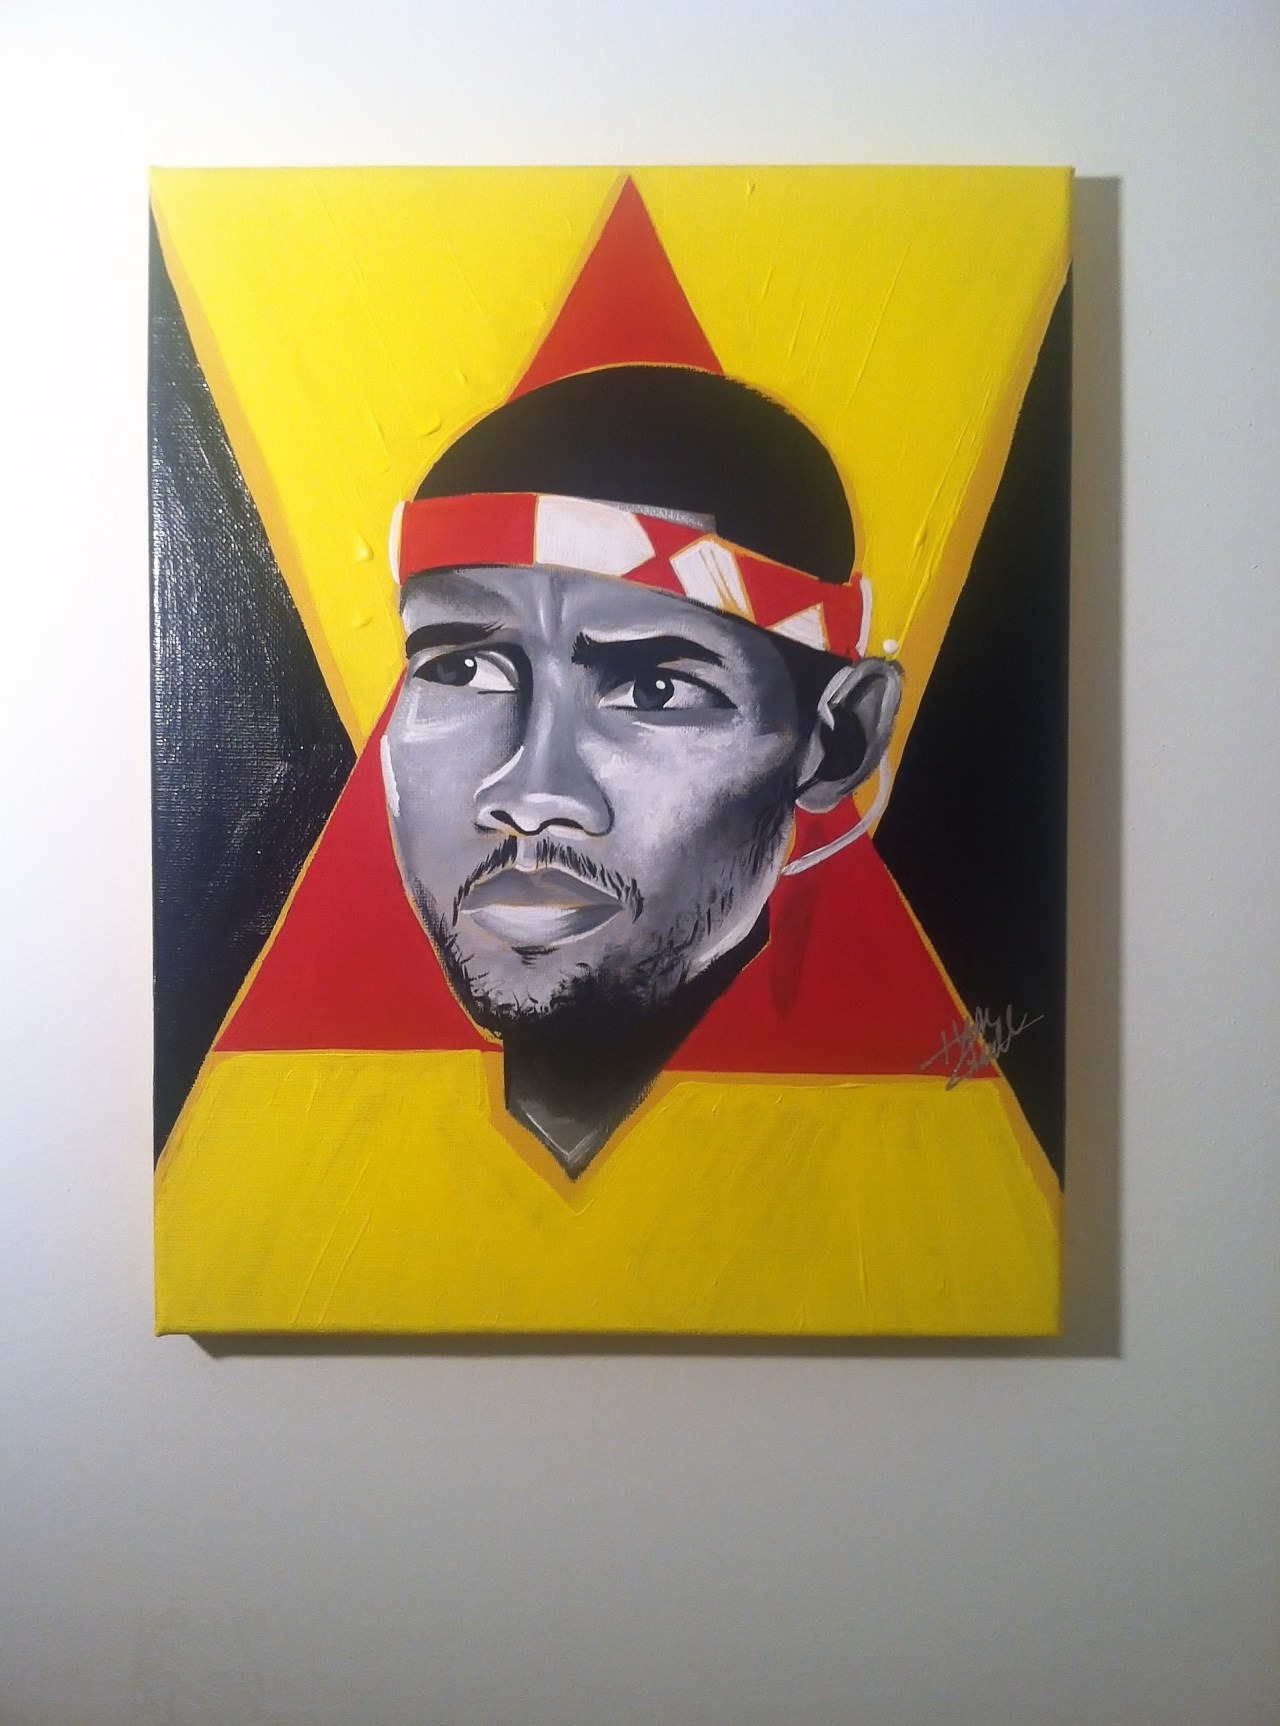 latest artwork - Frank Ocean  /  acrylic x canvas   PRINTS ALSO AVAILABLE http://addart.bigcartel.com/product/frank-ocean-pyramids-painting